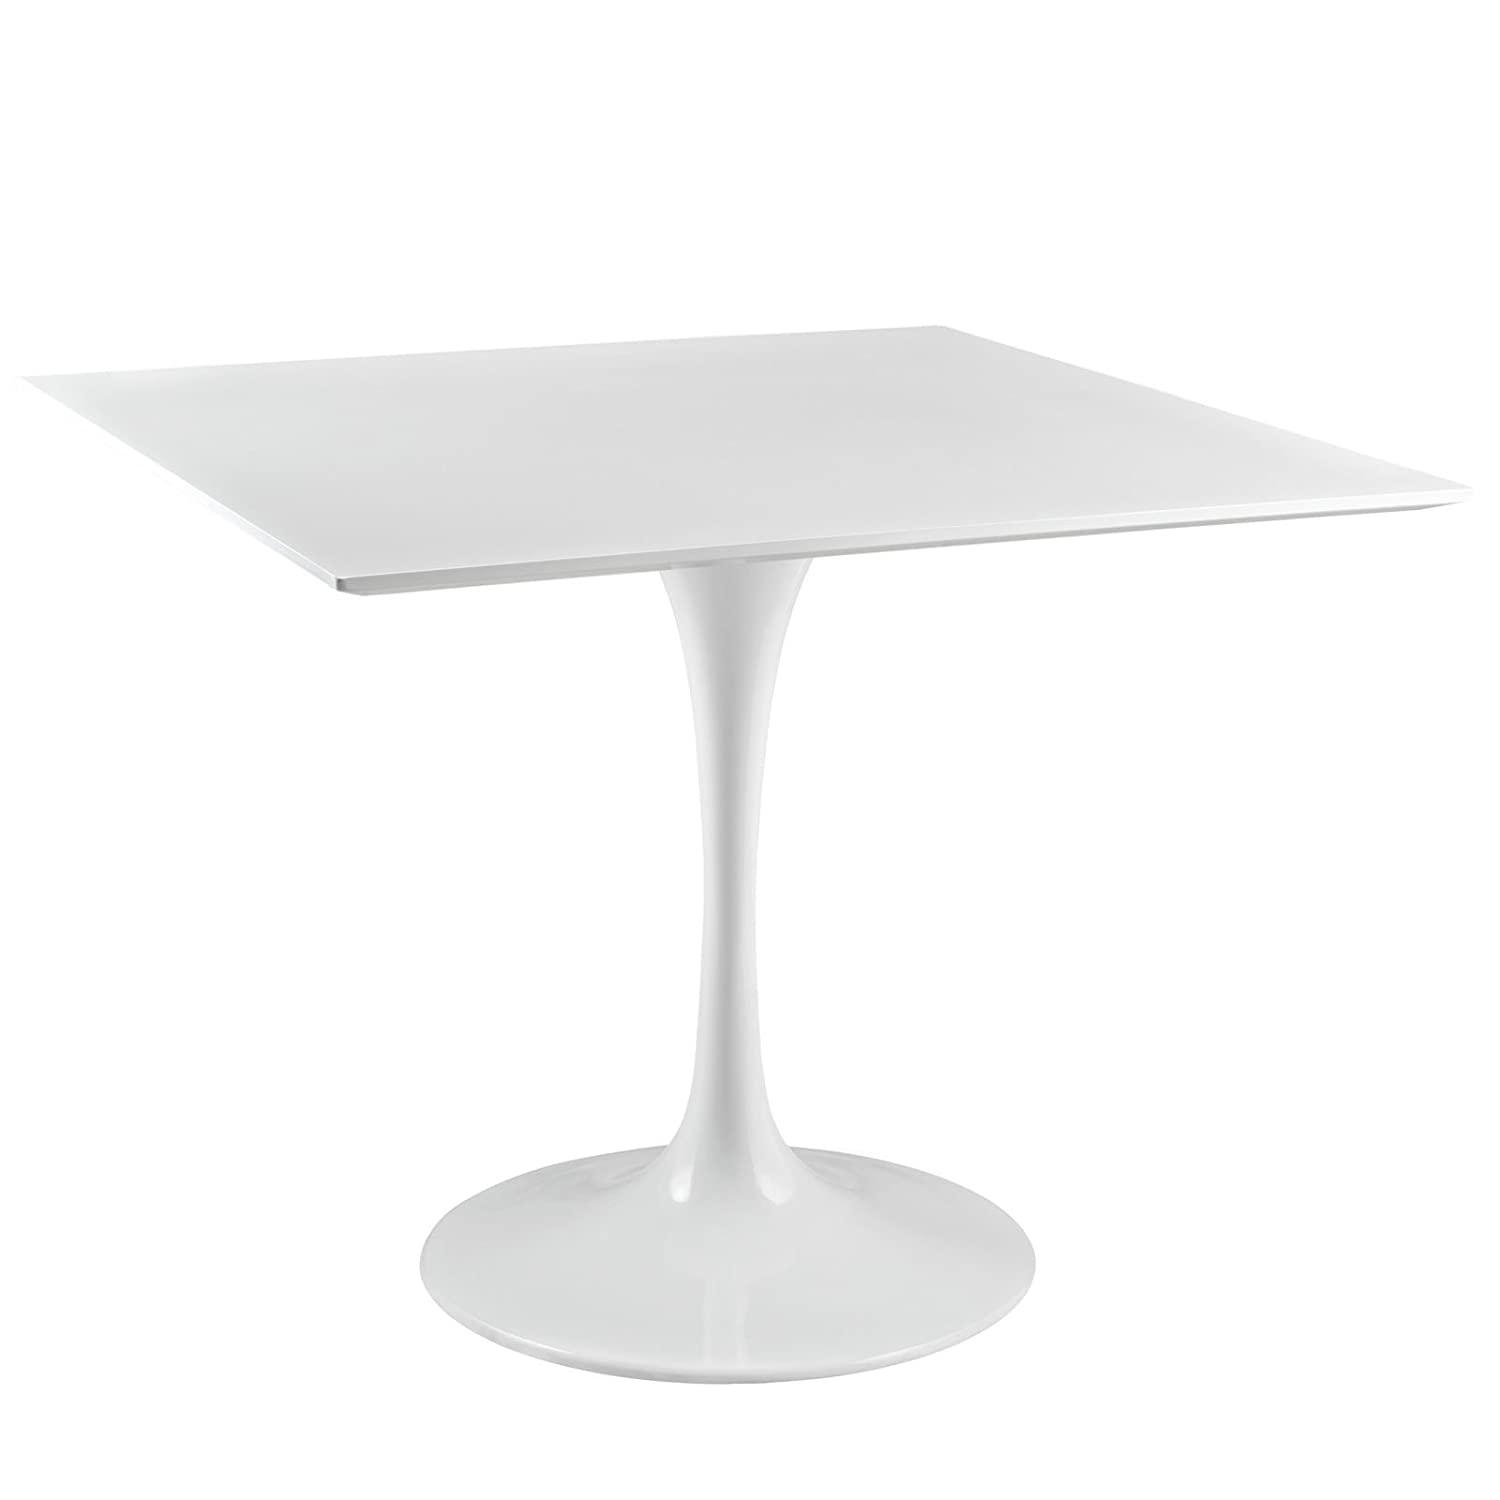 Modway Lippa 36 Mid-Century Modern Kitchen and Dining Table with Square Top and Pedestal Base in White